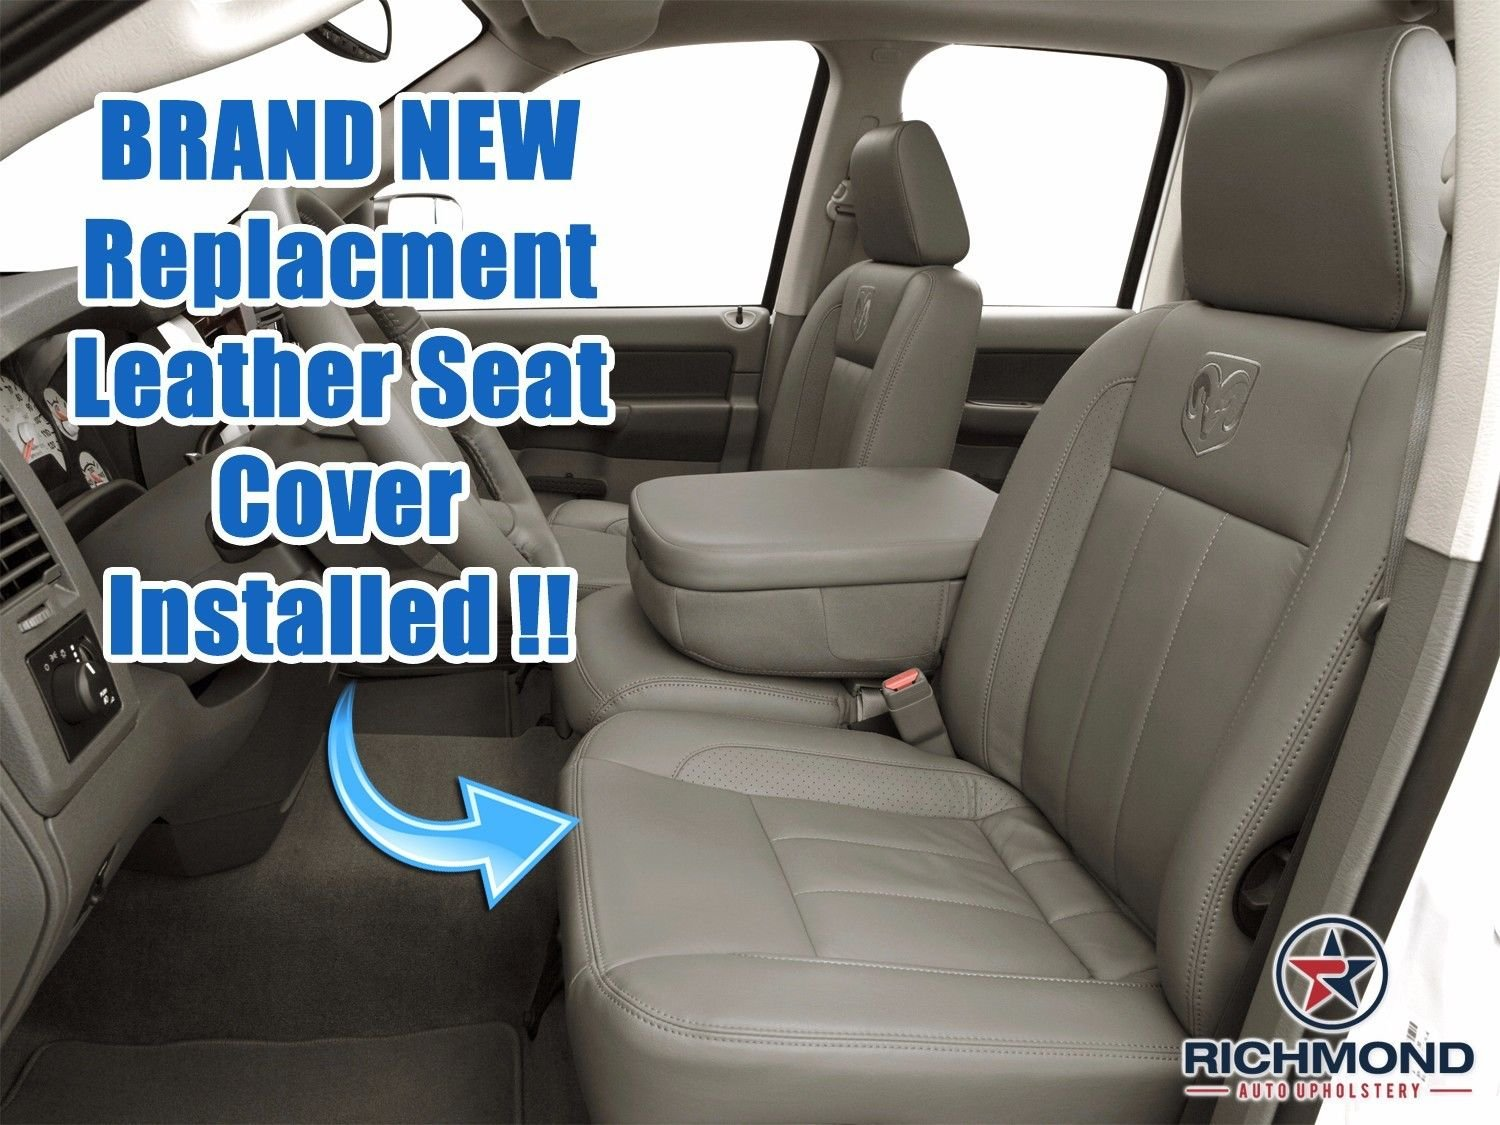 2009 Dodge Ram 1500 Leather Seat Covers Velcromag